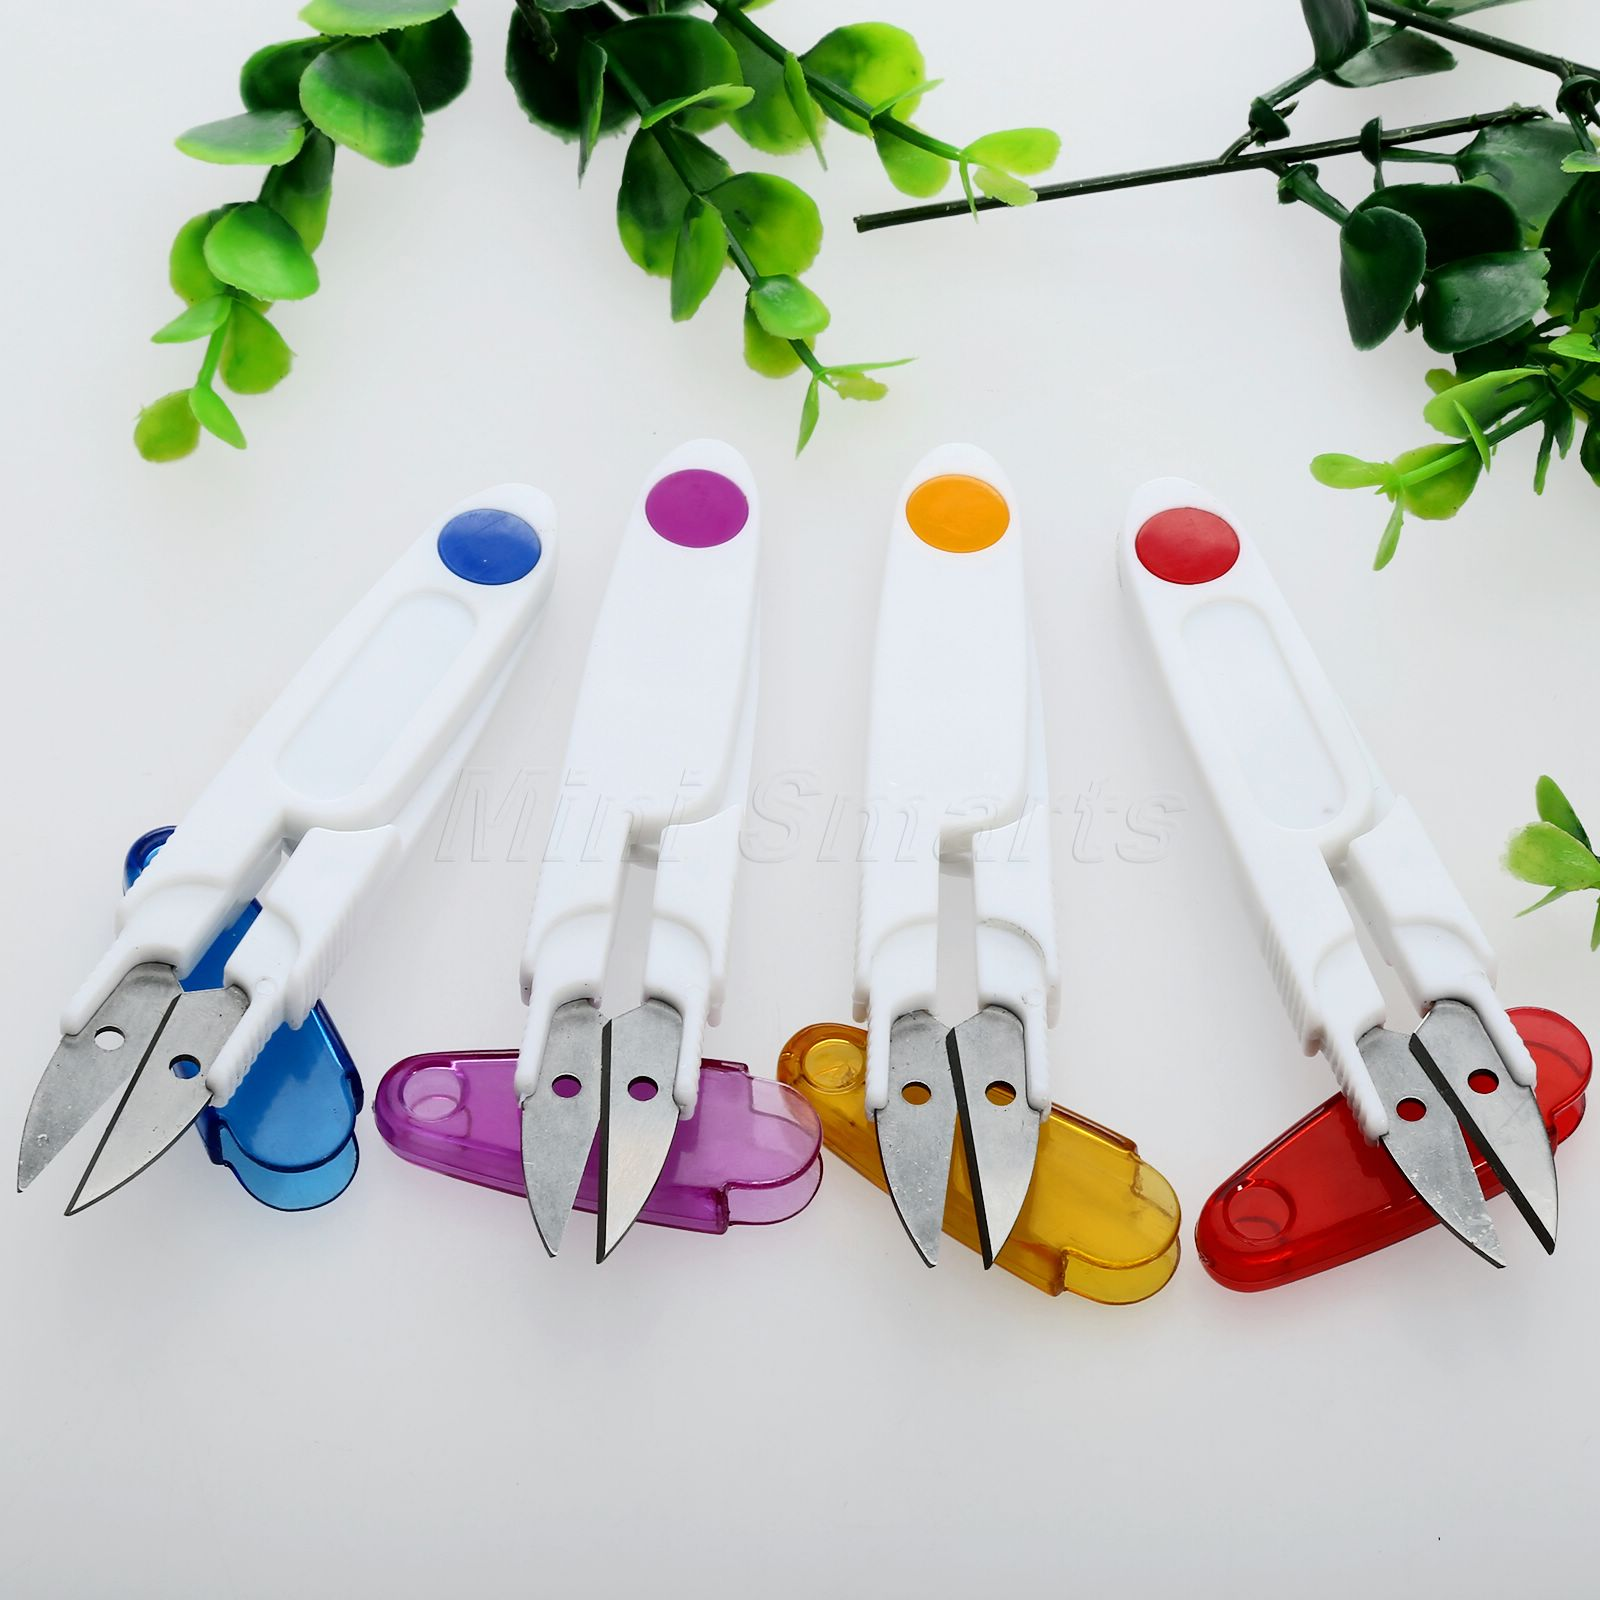 1x Röd / Gul / Lila / Blå Plast Hantering Sy Snip Thread Cut Scissors Cross Stitch DIY Craft Home Praktisk Novelty Tool